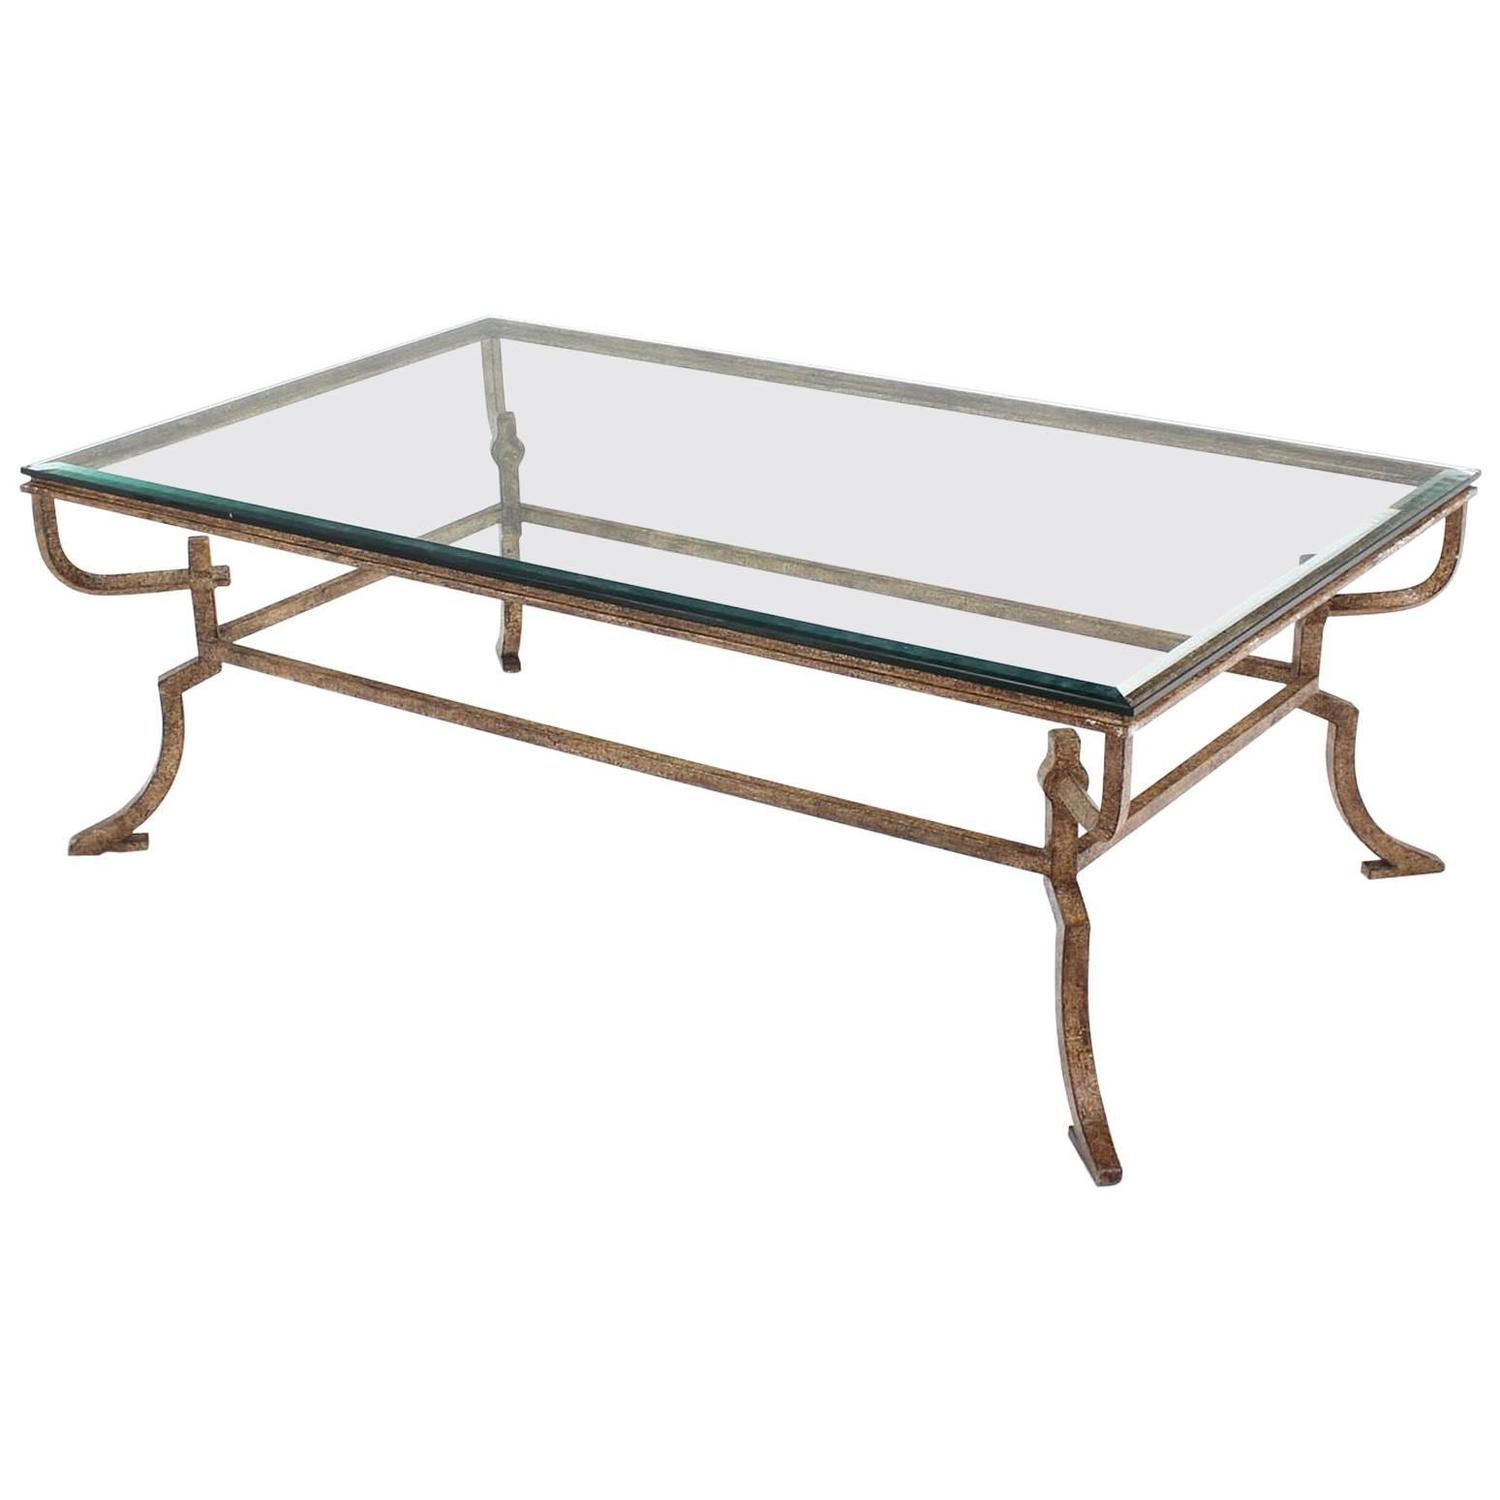 Heavy wrought iron studio work base glass top coffee table for sale at 1stdibs Wrought iron coffee table bases